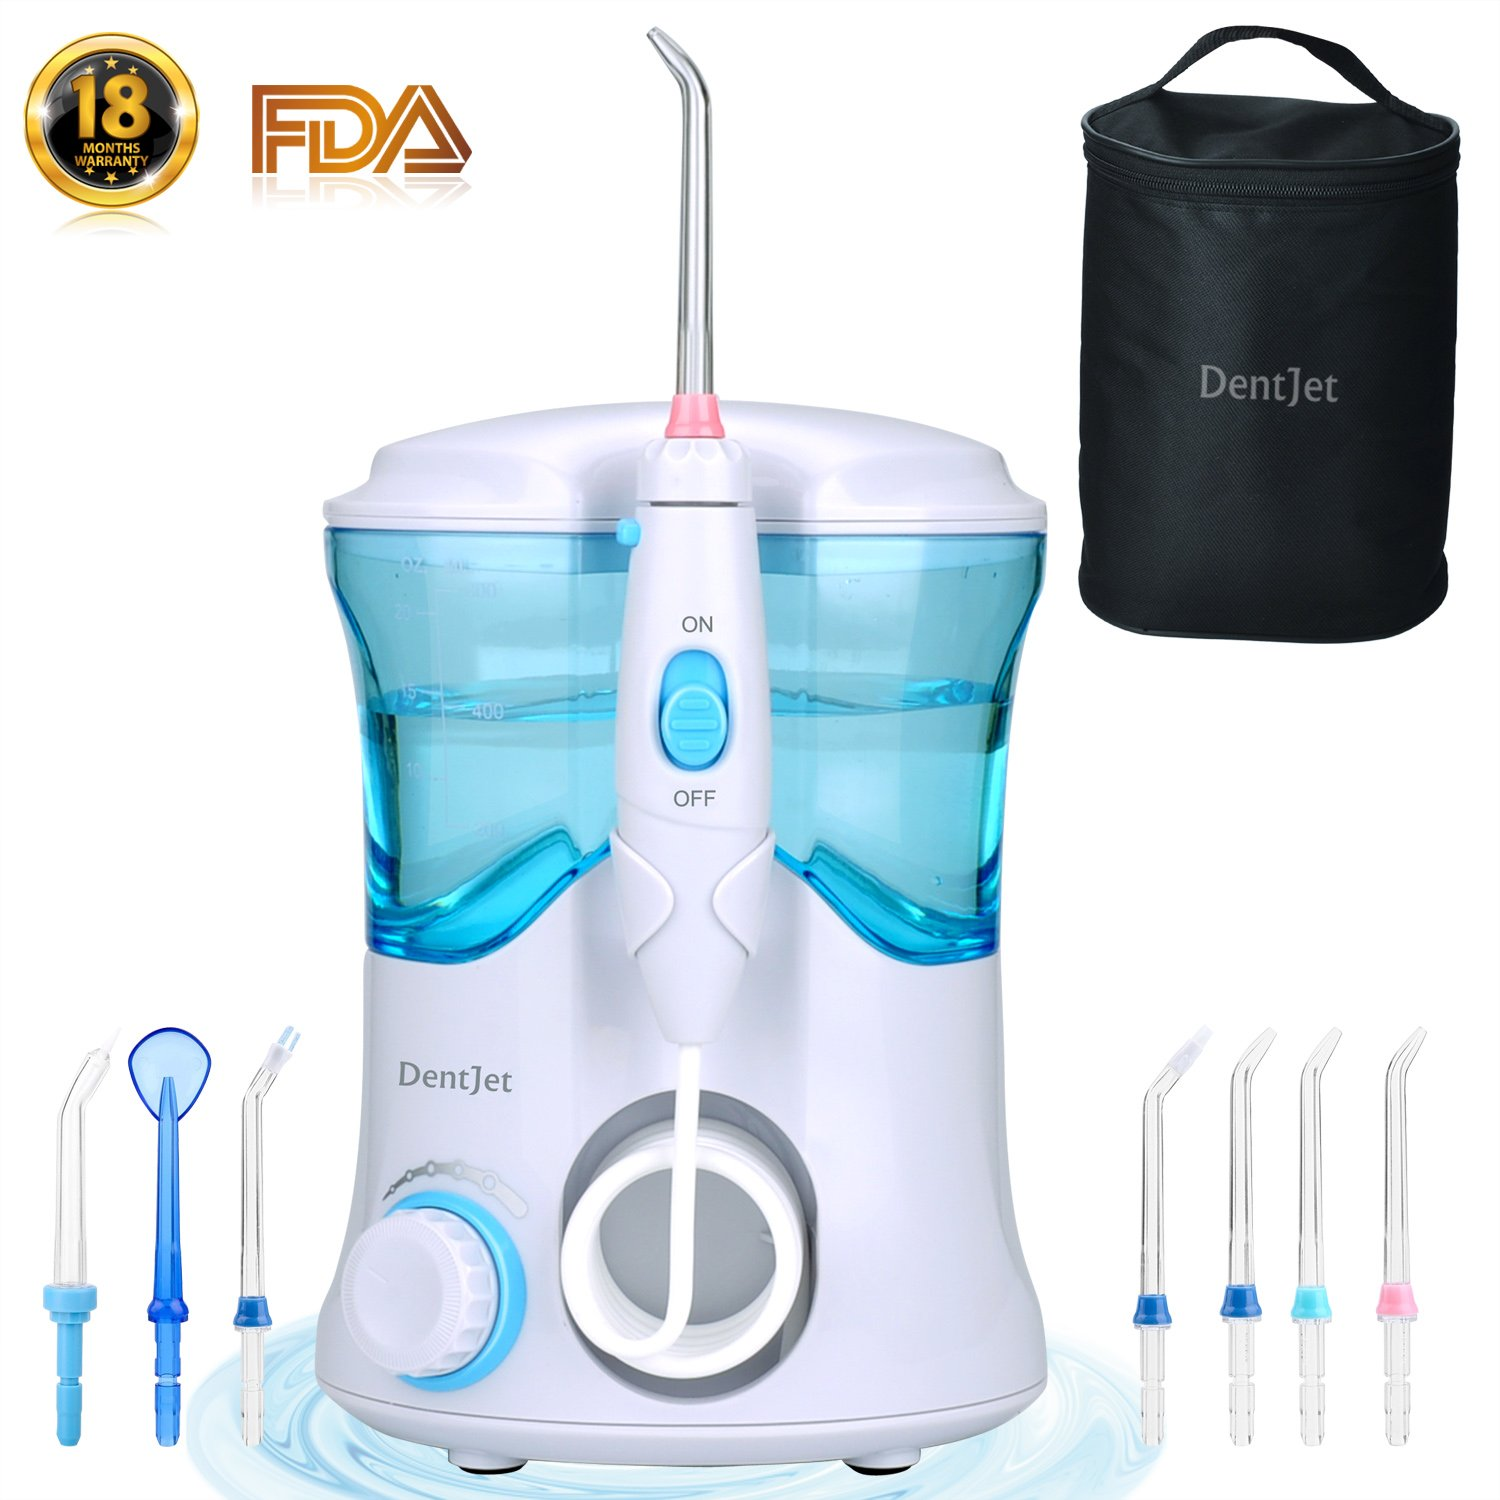 Oral Irrigator Multifunctional Water Flosser for Family, DentJet Professional Dental Care Kit Teeth Cleaner Water Pick for Teeth with 7 Nozzles and Travel Bag